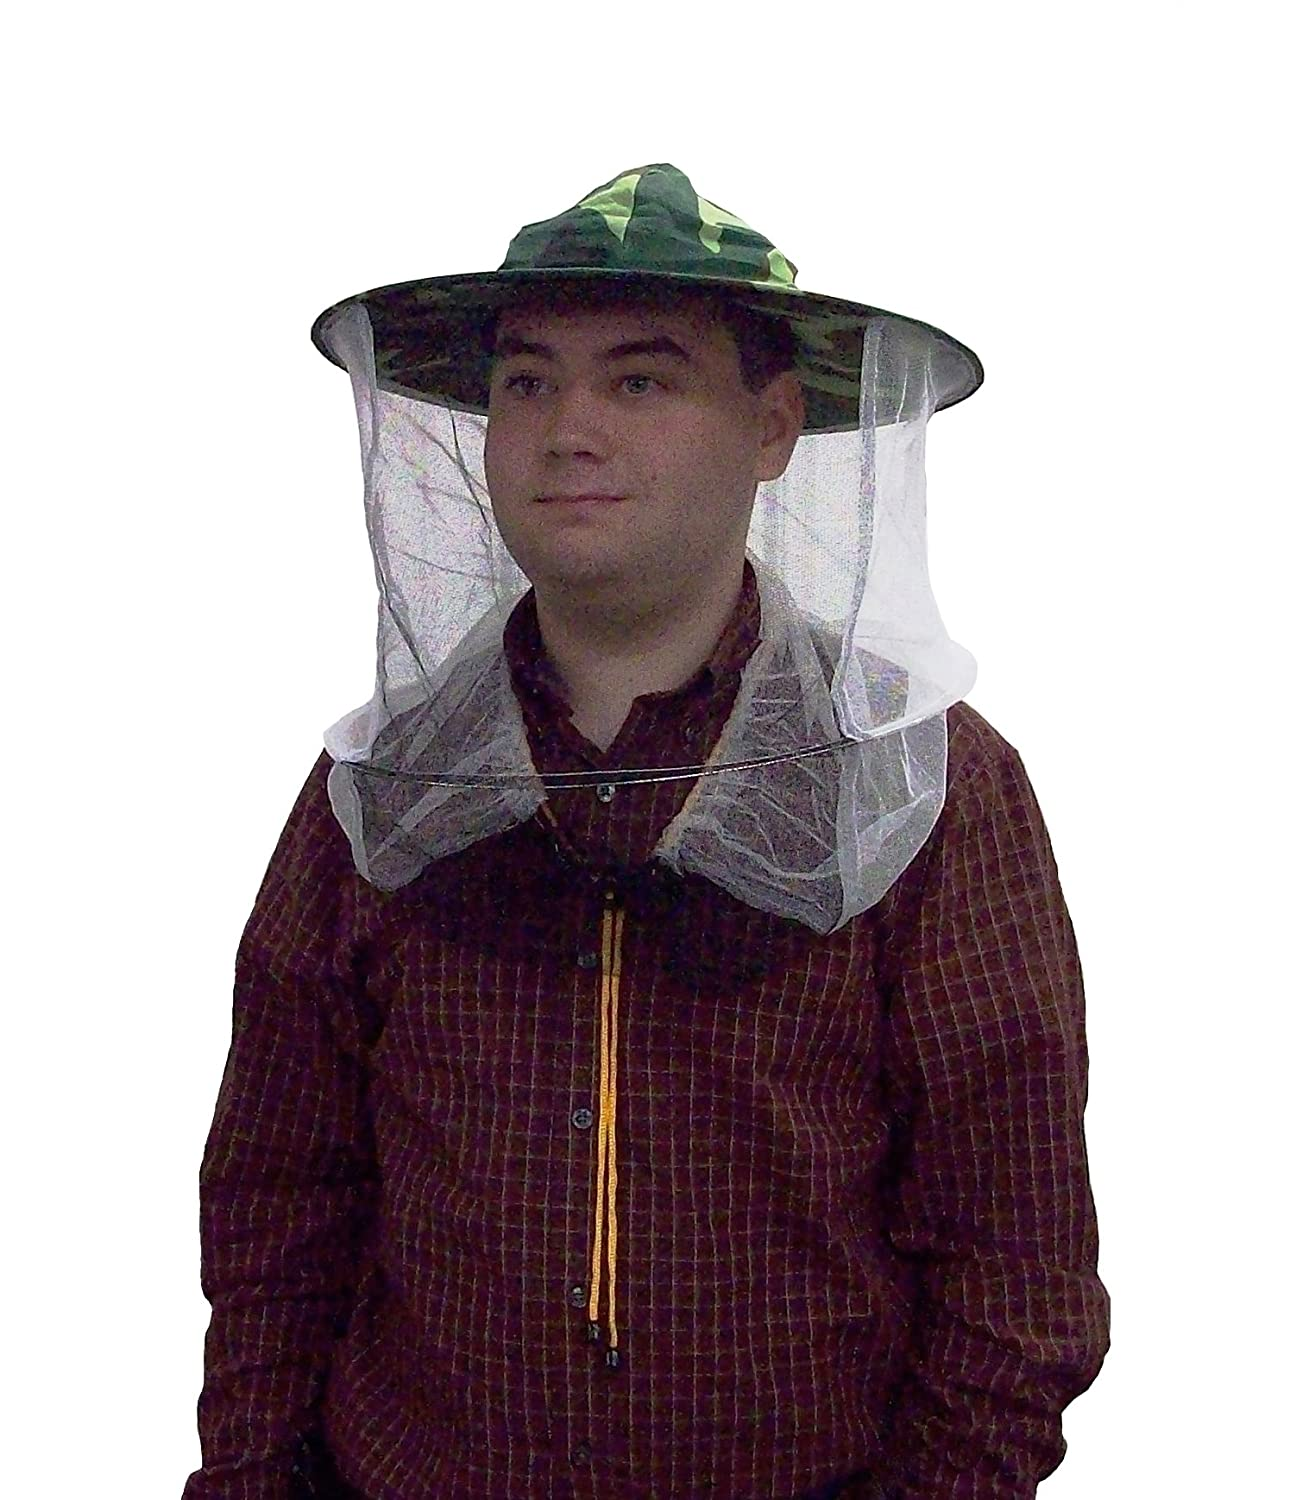 New Camo   Camouflage Beekeeper Beekeeping Hat with Veil Mosquito Head Net  by VIVO (BEE-V107C)  Amazon.in  Industrial   Scientific 60d9f5f2deb5